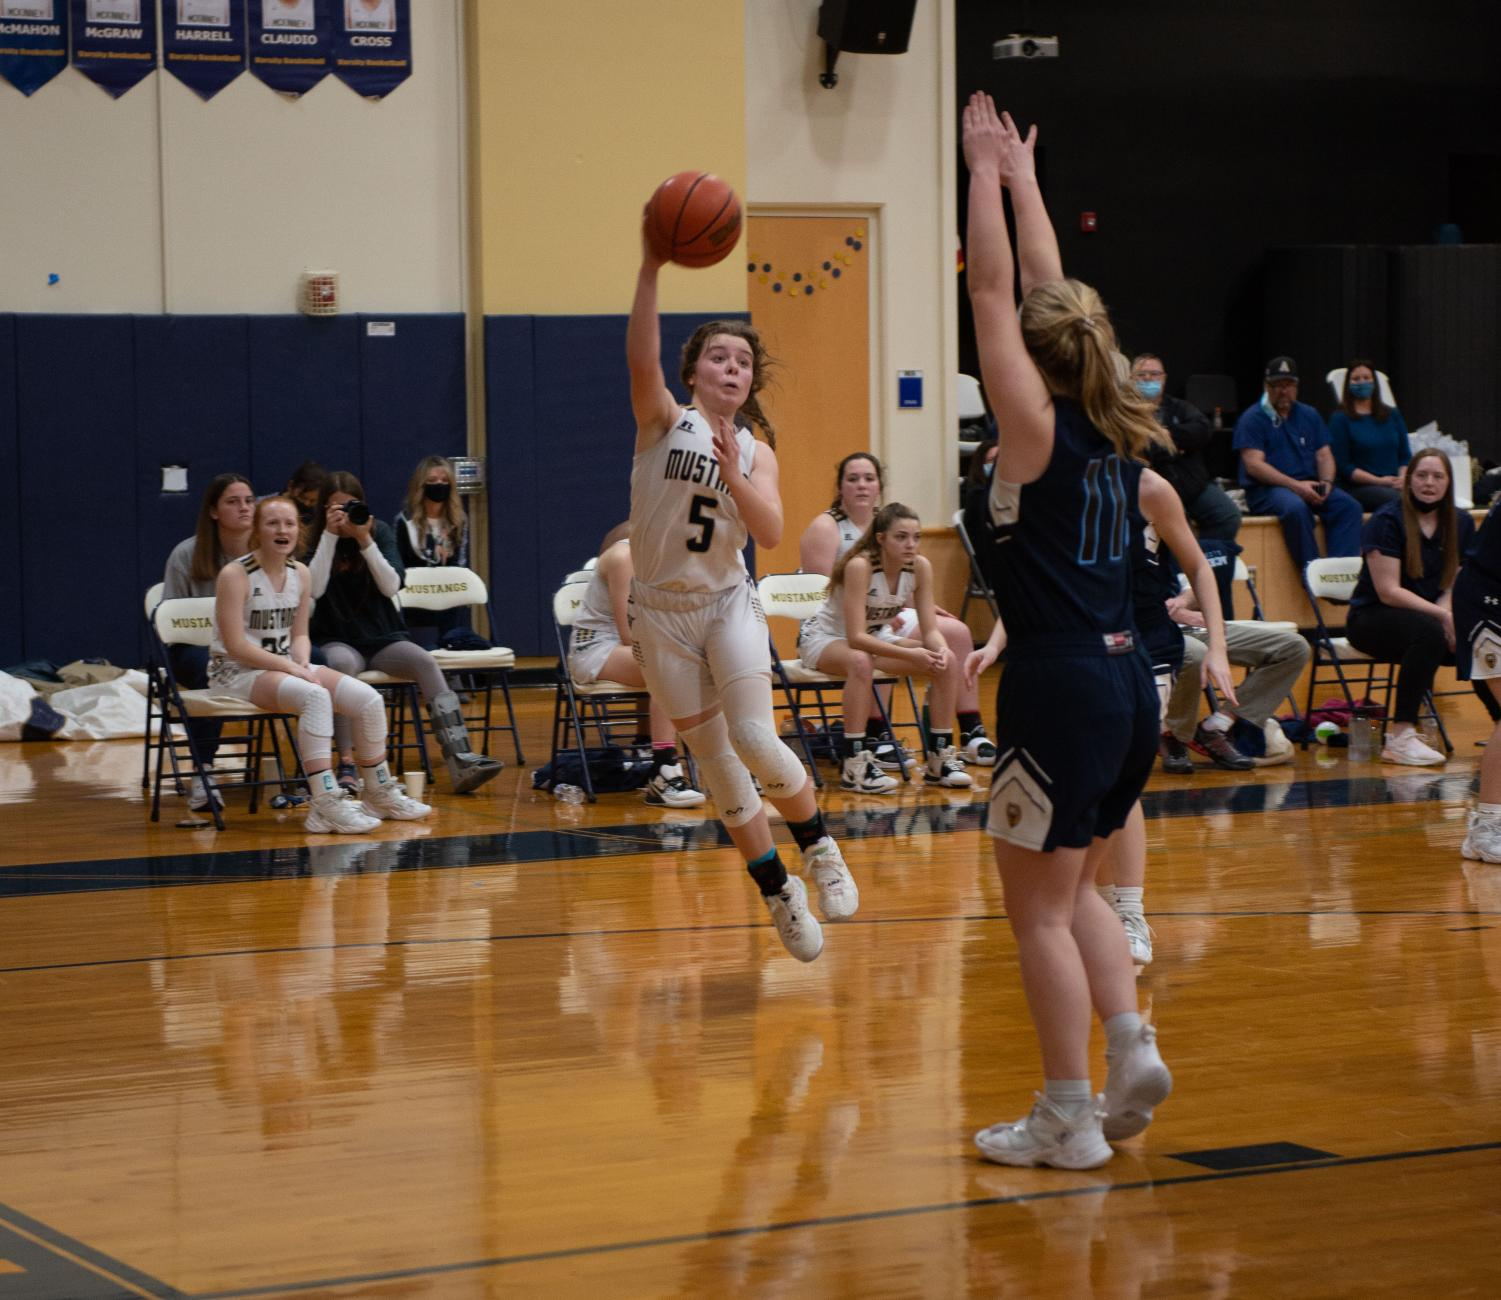 Lady+Mustangs+Basketball+Season+Ends+in+Playoffs